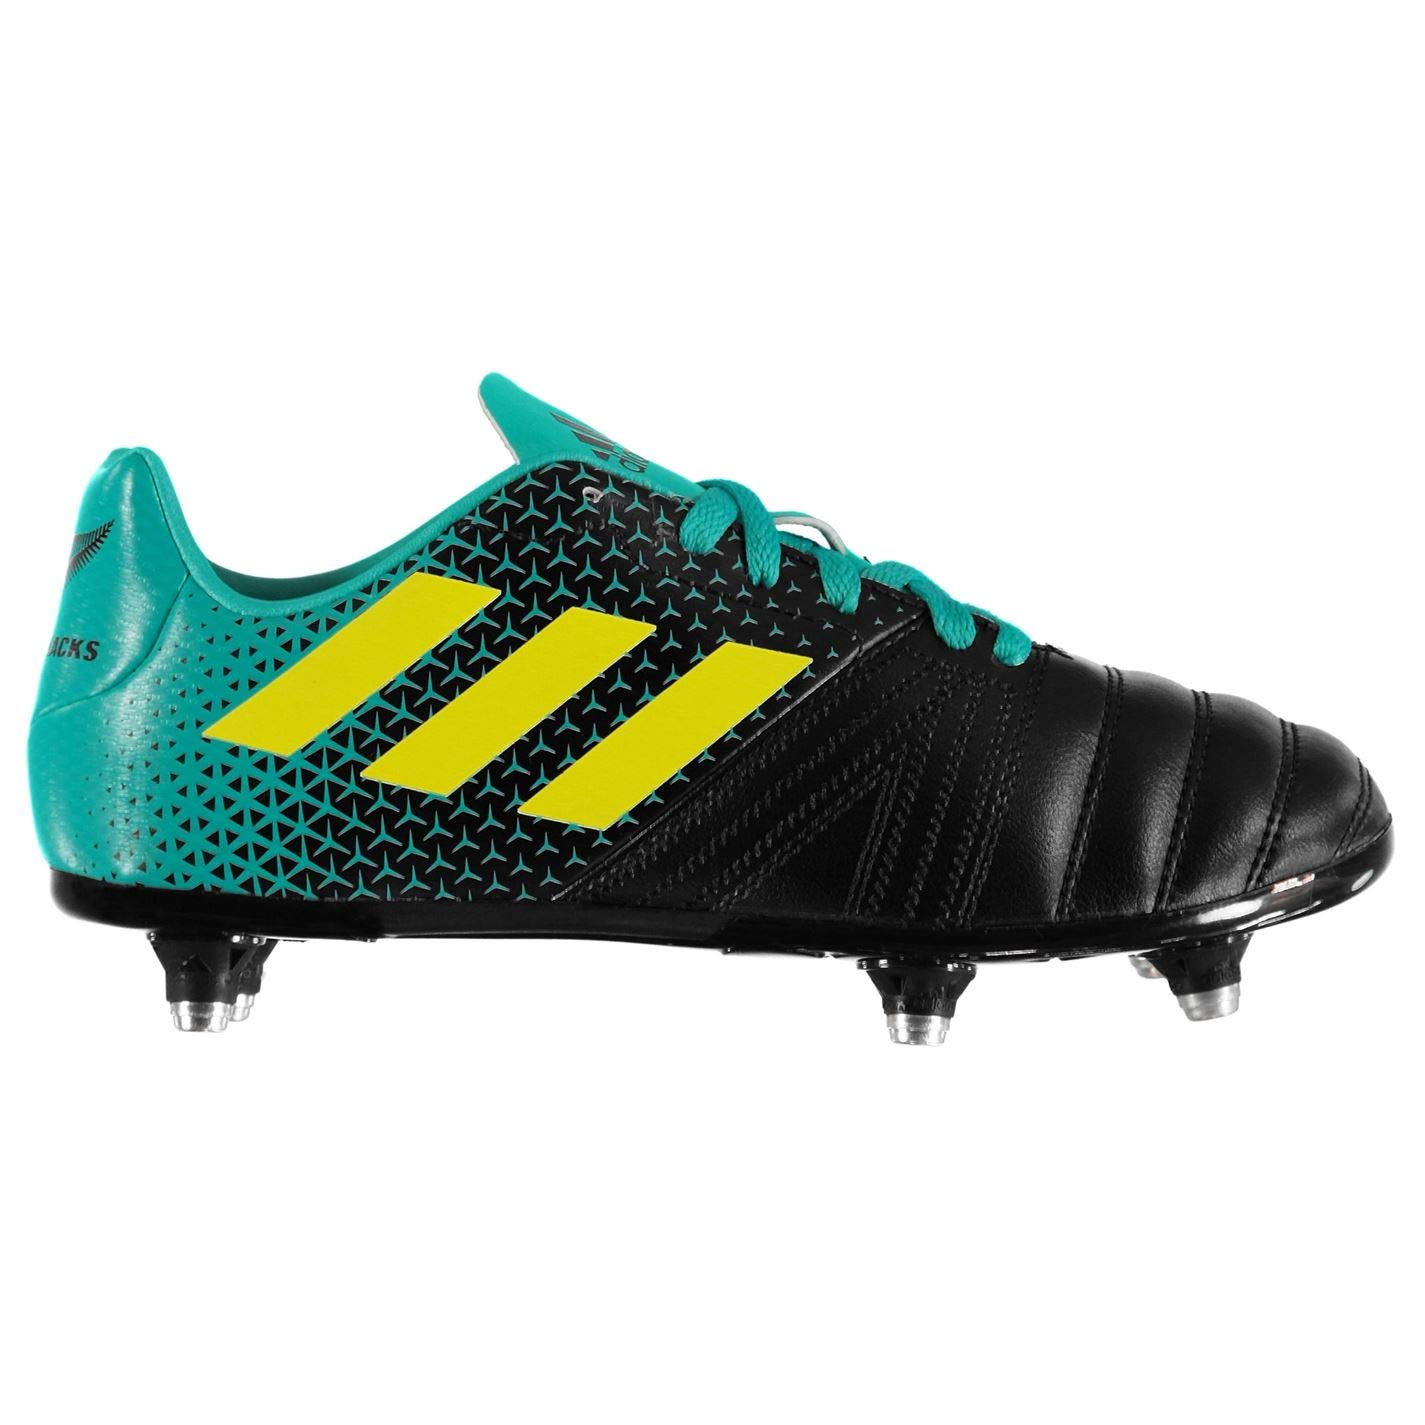 adidas All Blacks Kid's Rugby Boots SG